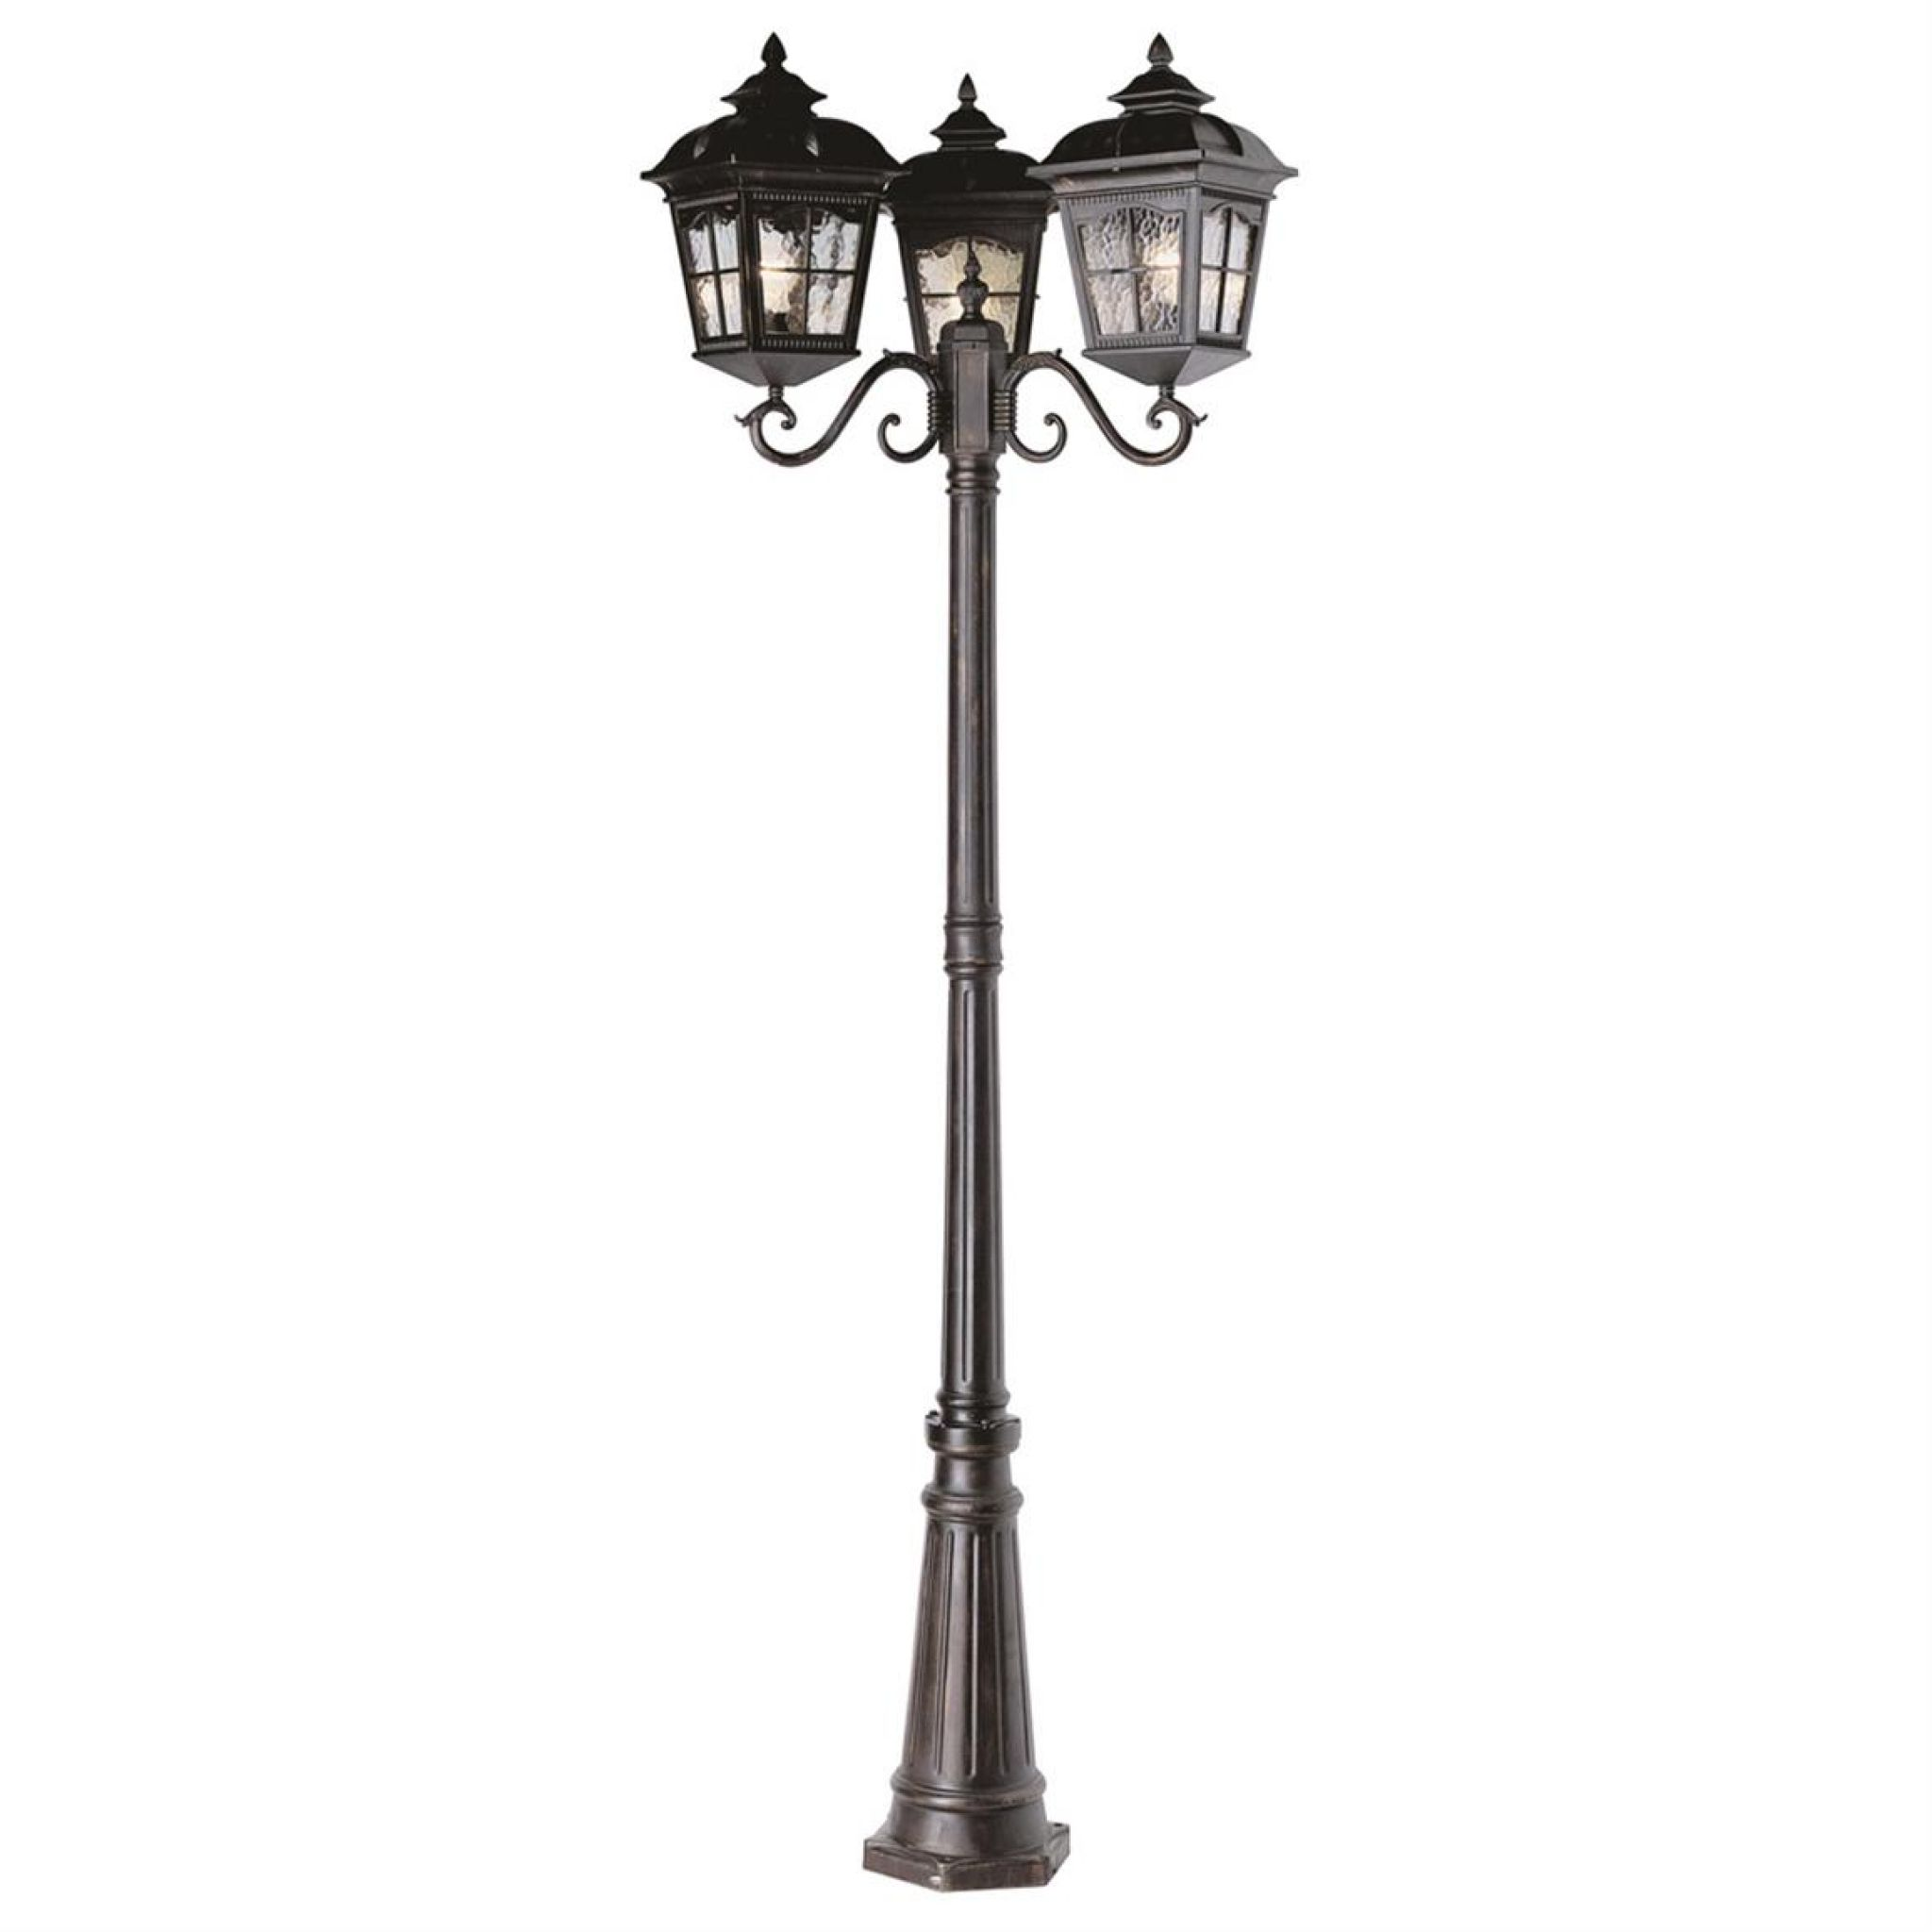 Outdoor Post Light Parts Interior Paint Color Ideas Check More At Http Www Mtbasics Com Outdoor Post Light Parts I Outdoor Lamp Posts Outdoor Lamp